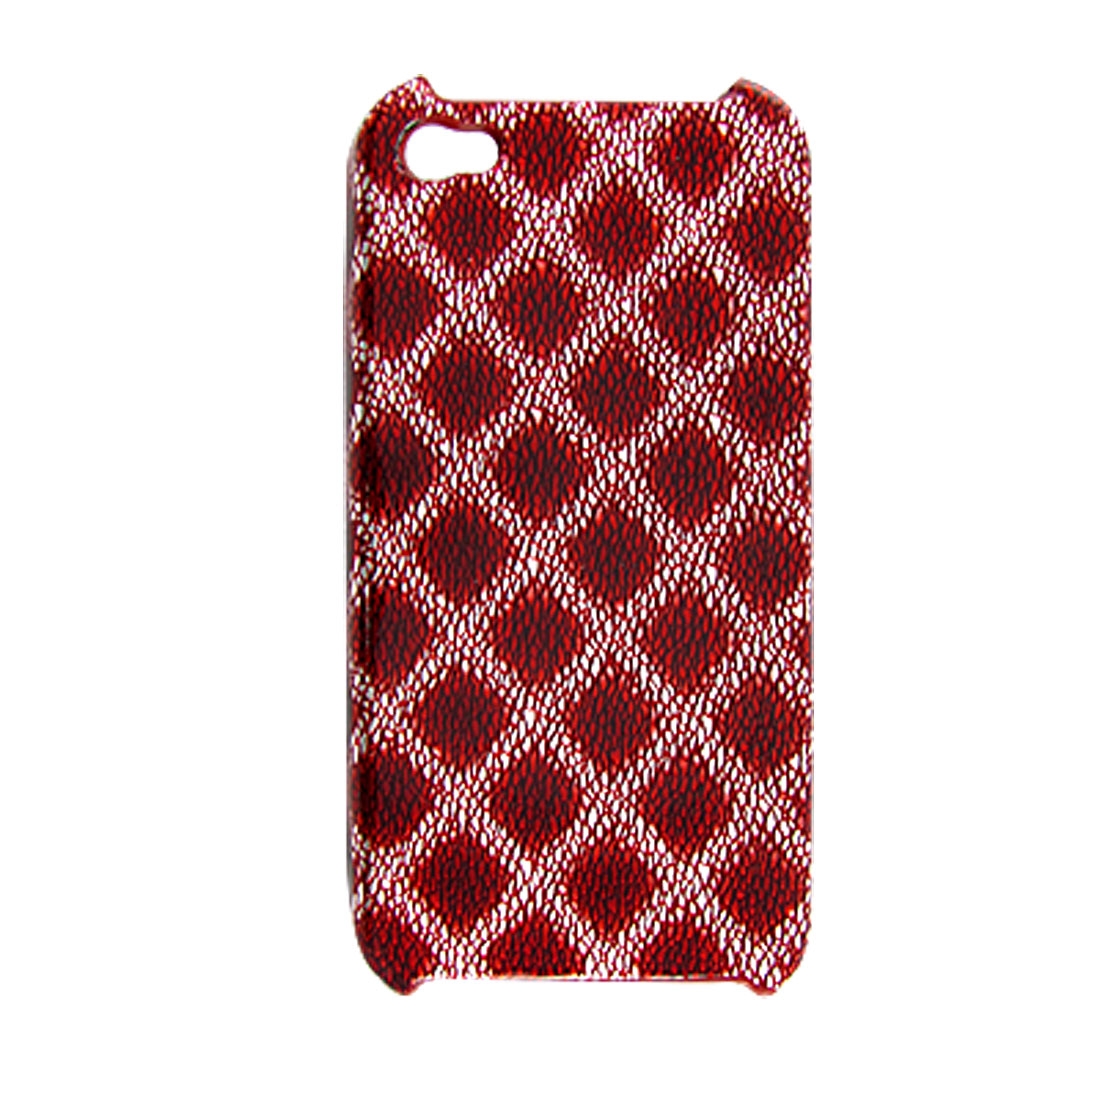 Red Argyle Faux Leather Coated Plastic Back Case for iPhone 4 4G